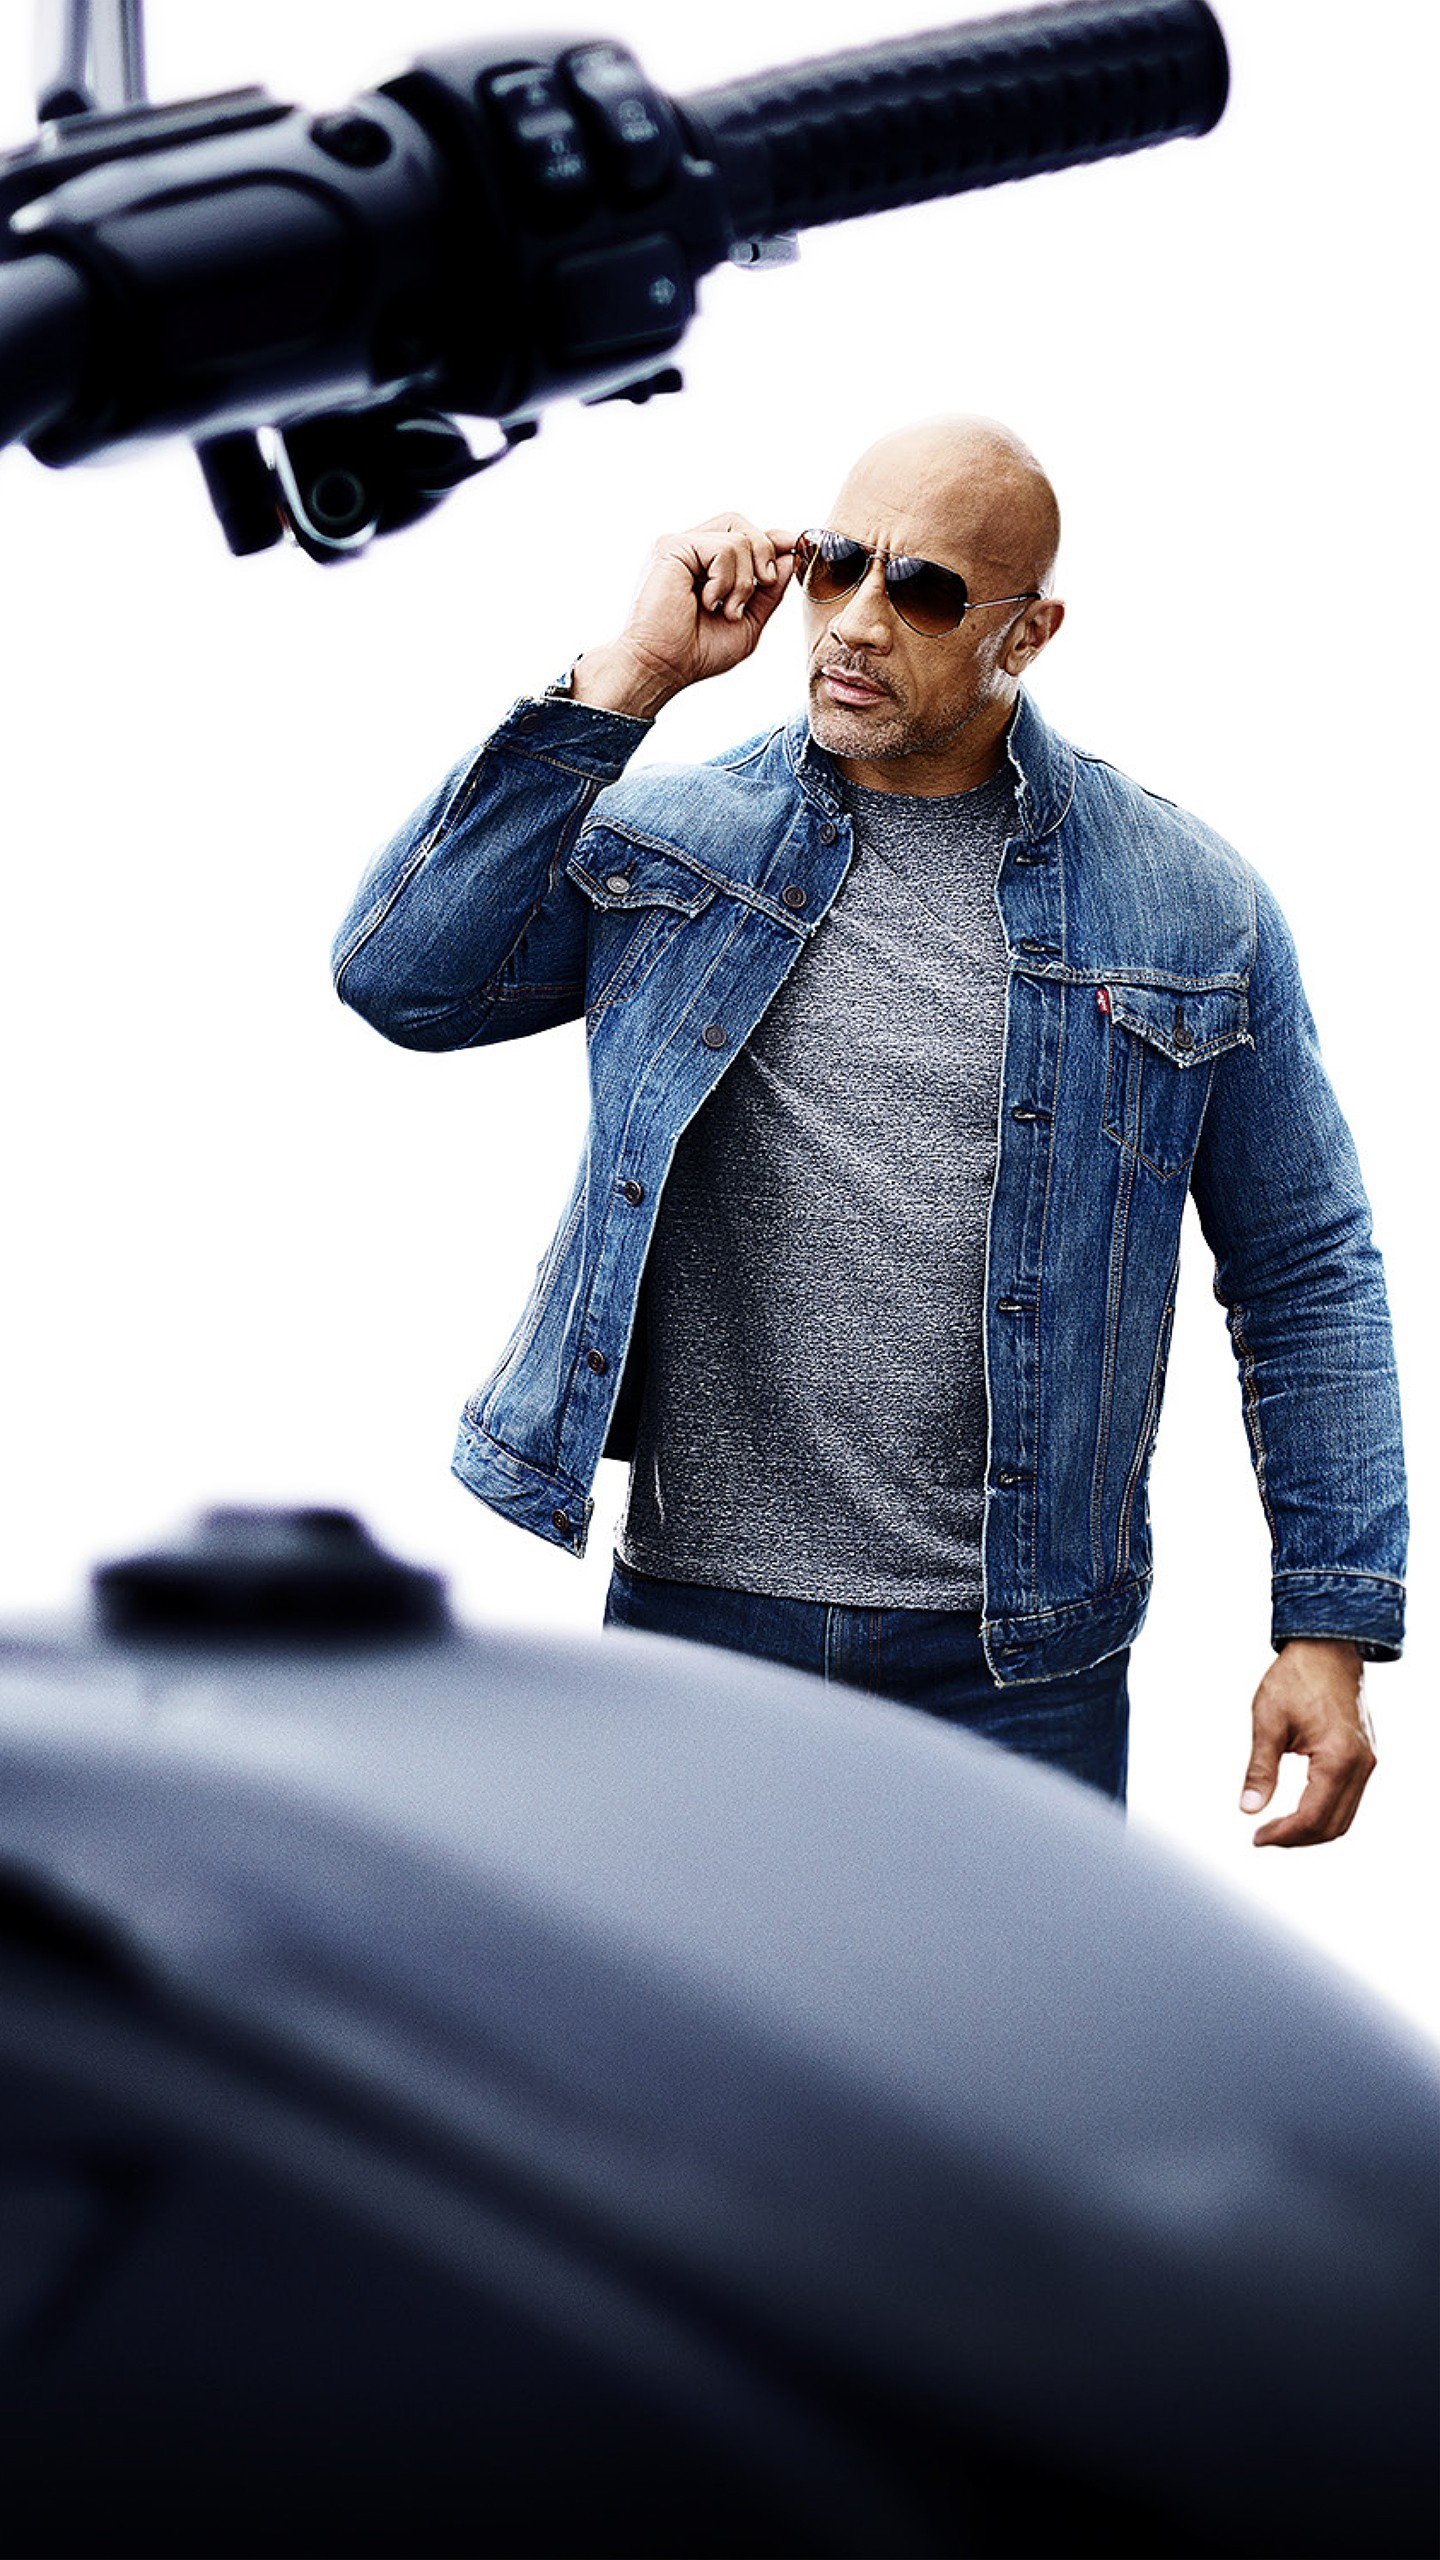 Fast And Furious 6 Cars Hd Wallpaper Dwayne Johnson In Fast Amp Furious Presents Hobbs Amp Shaw